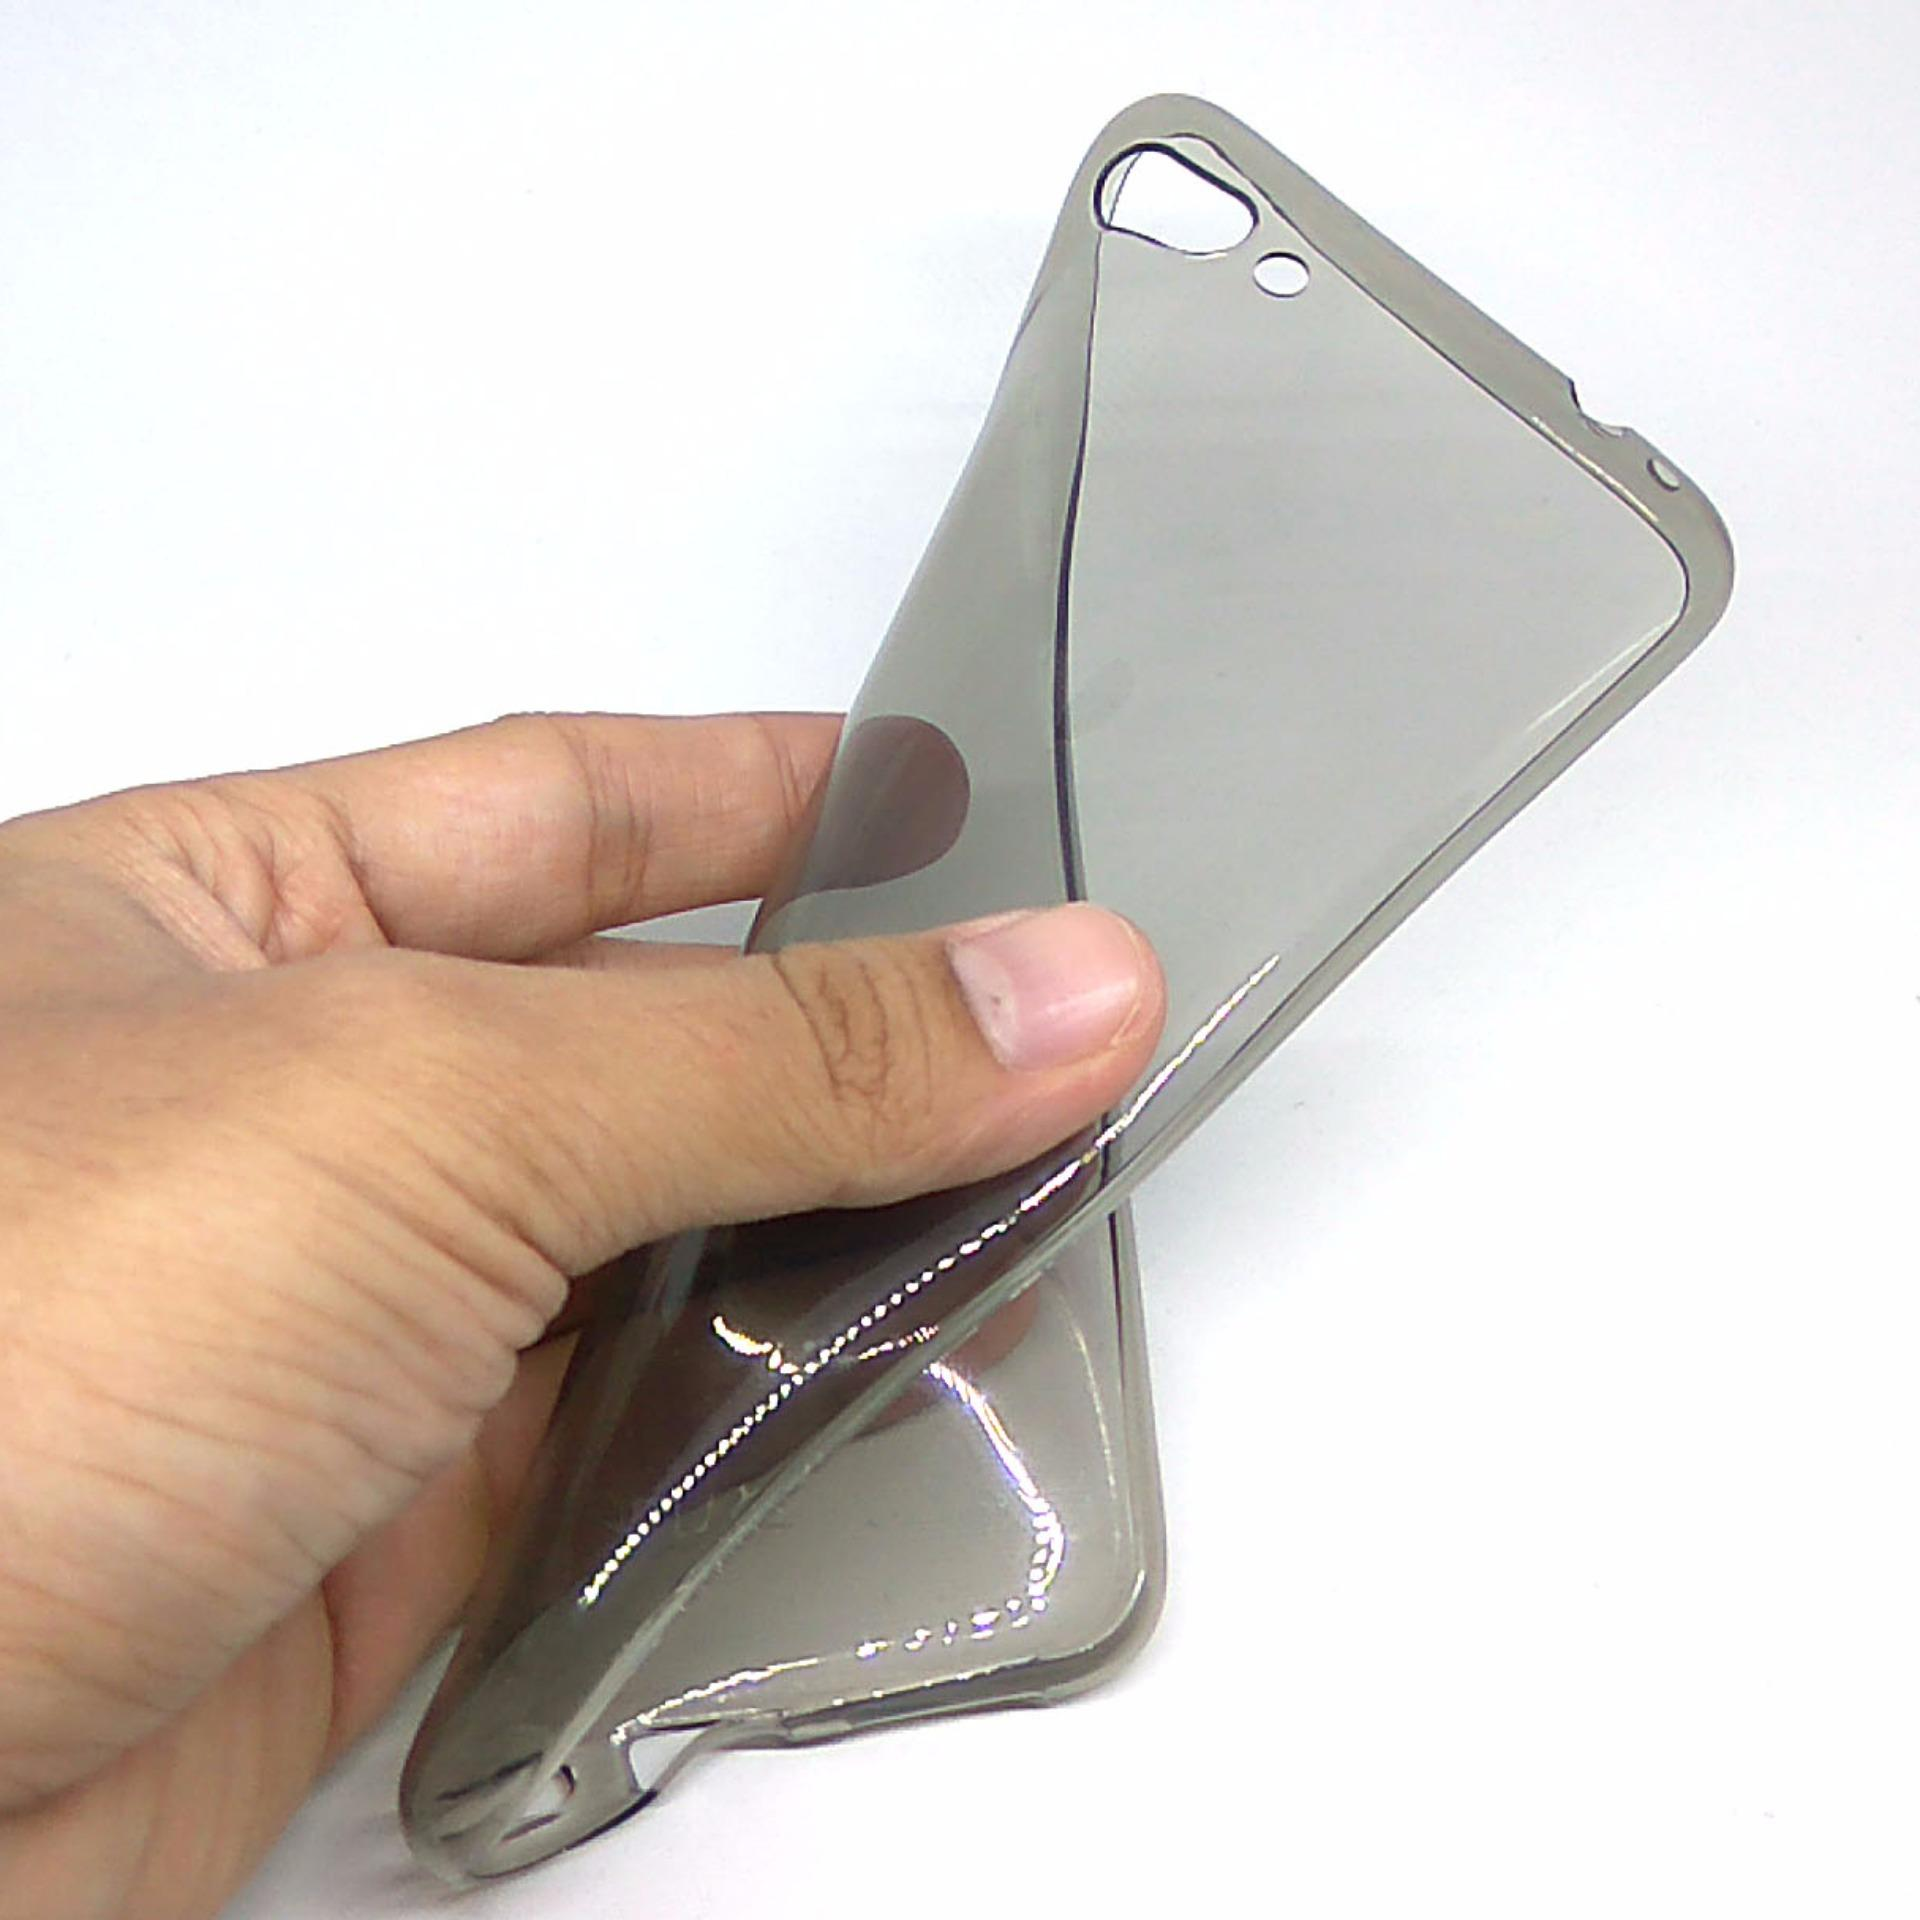 ... Ultrathin Softcase UME TPU untuk Asus Zenfone 4 Max ZC554KL Casing Ultra thin Soft case Silikon ...